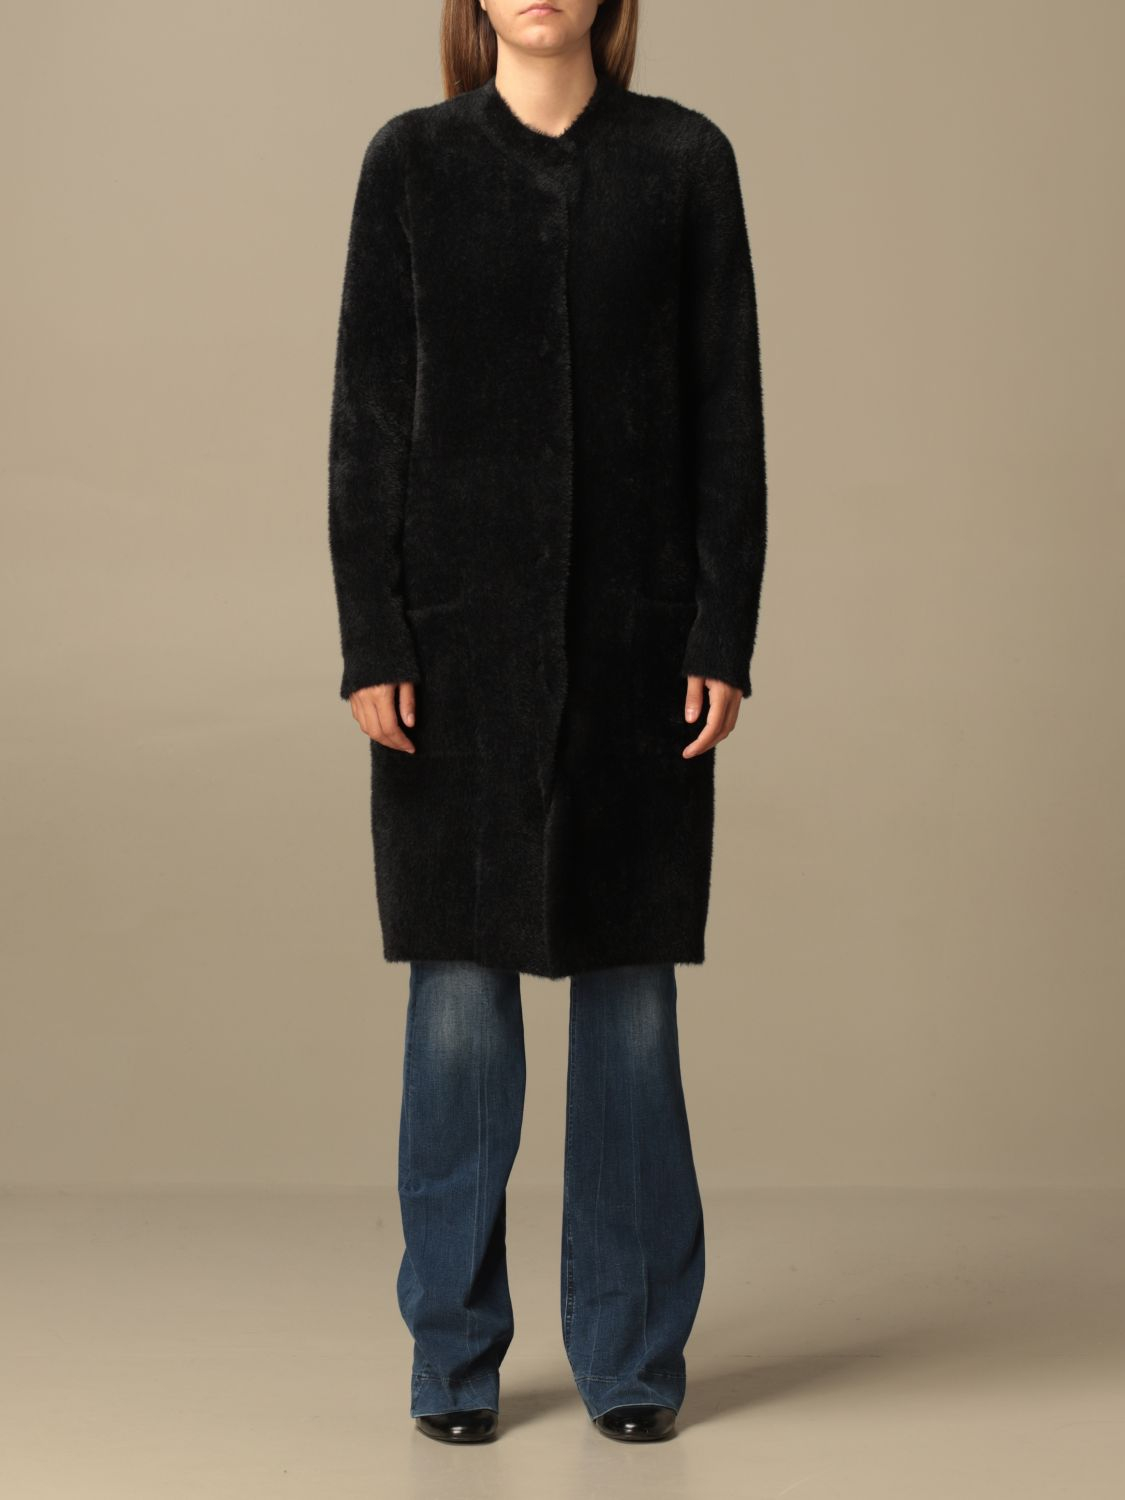 SHOPPING ON LINE TWINSET MILANO CAPPOTTO IN MAGLIA  NEW COLLECTION WOMEN'S FALL WINTER 2020/2021